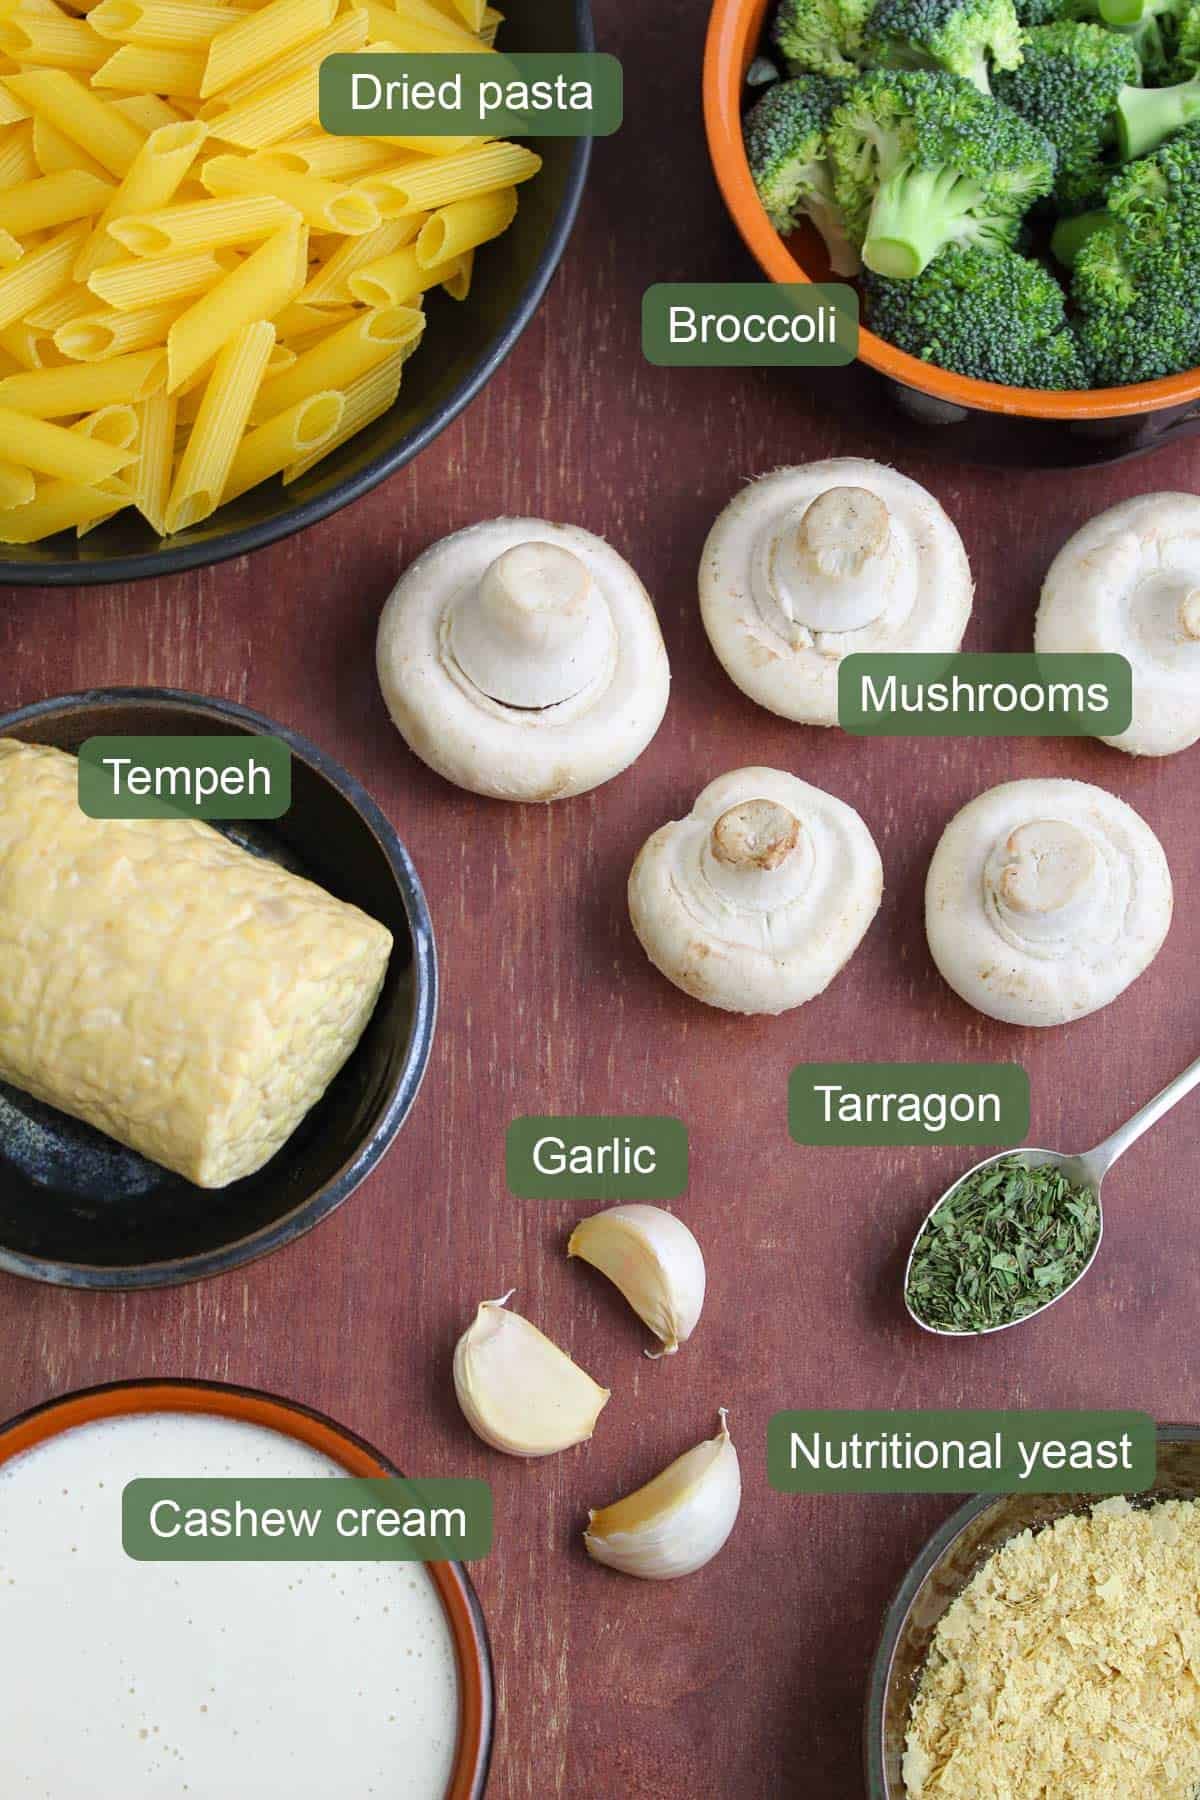 List of Ingredients to Make Creamy Tempeh Pasta